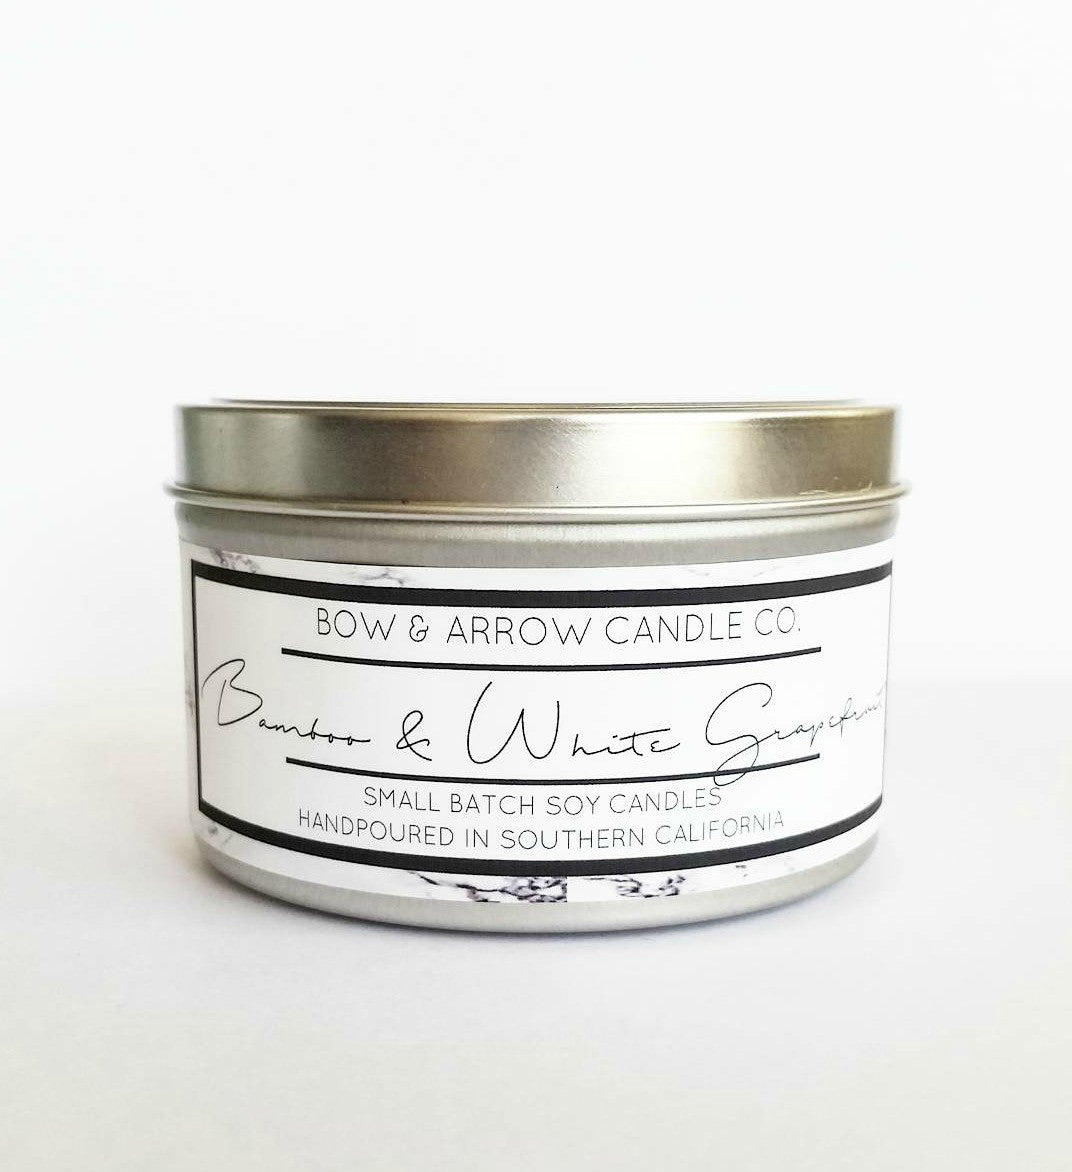 Bamboo & White Grapefruit Scented 8 oz Soy Candle